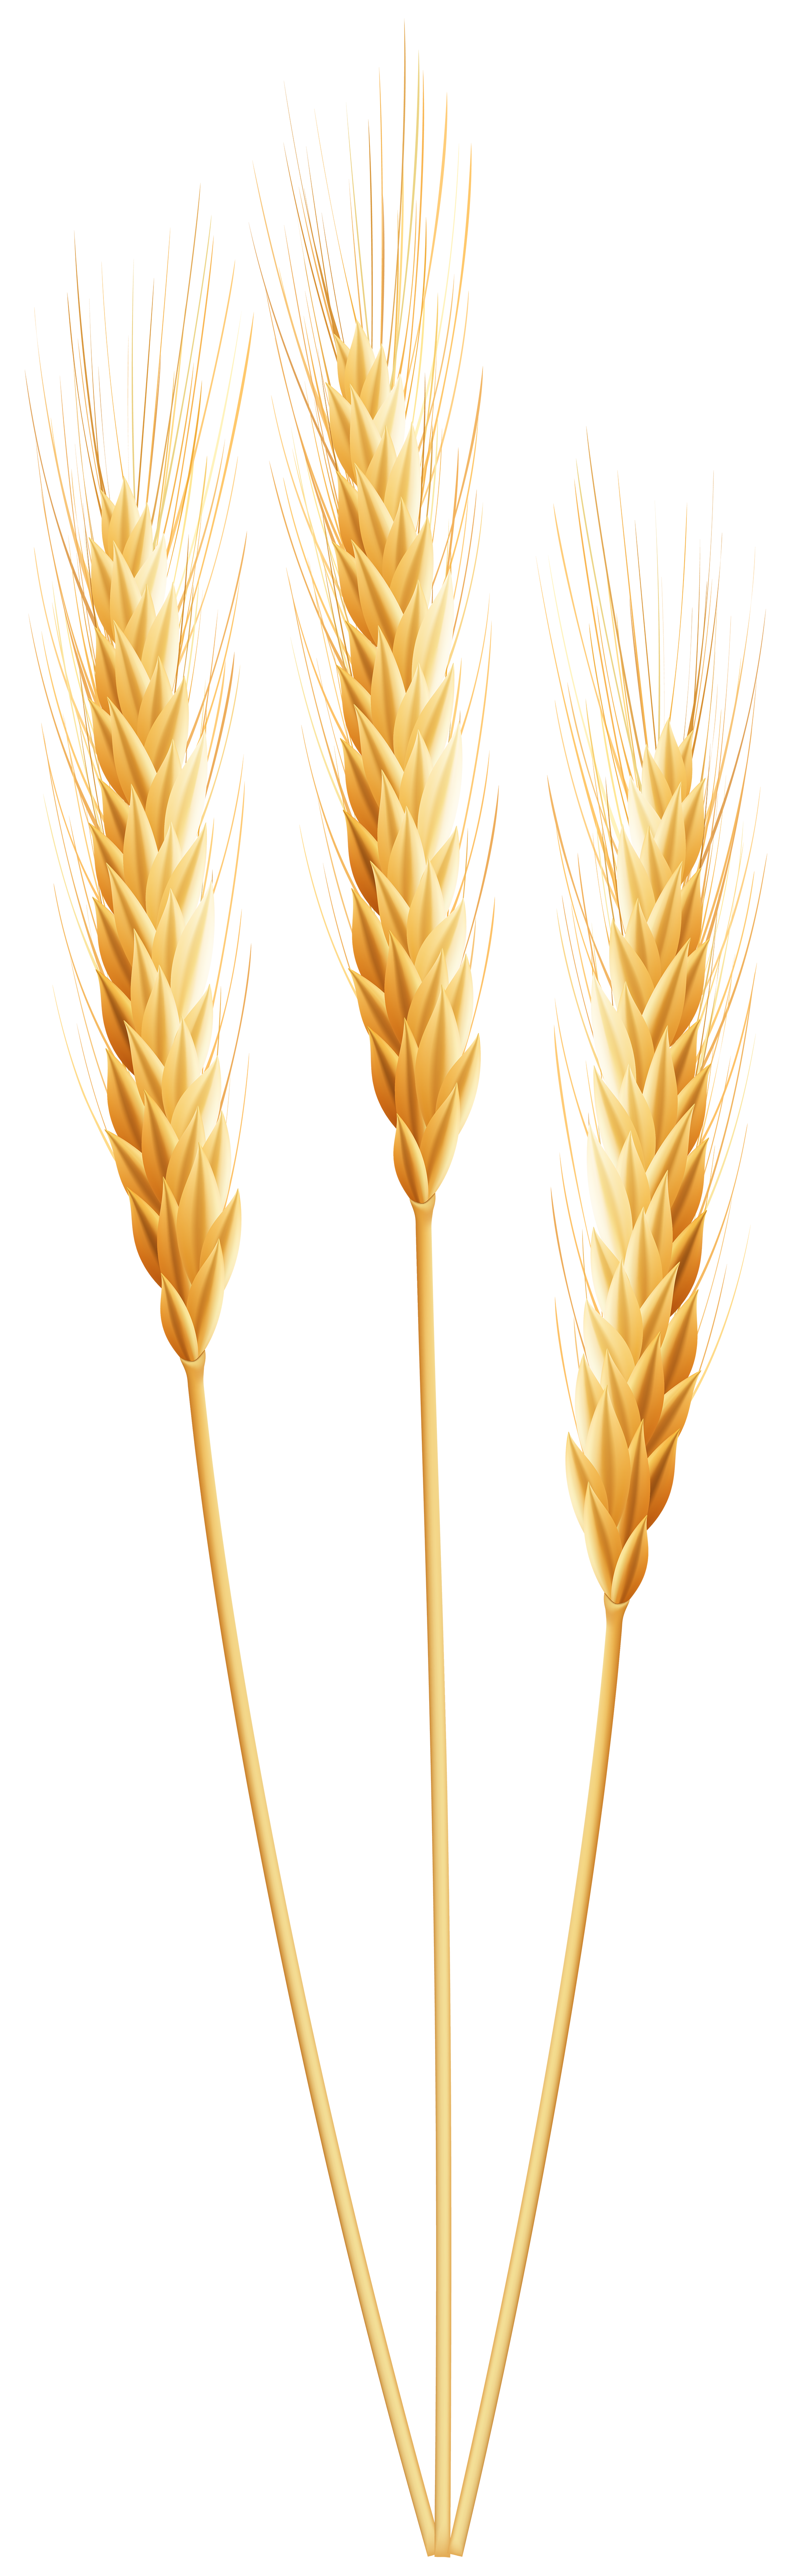 Wheat clipart bushel wheat, Wheat bushel wheat Transparent.